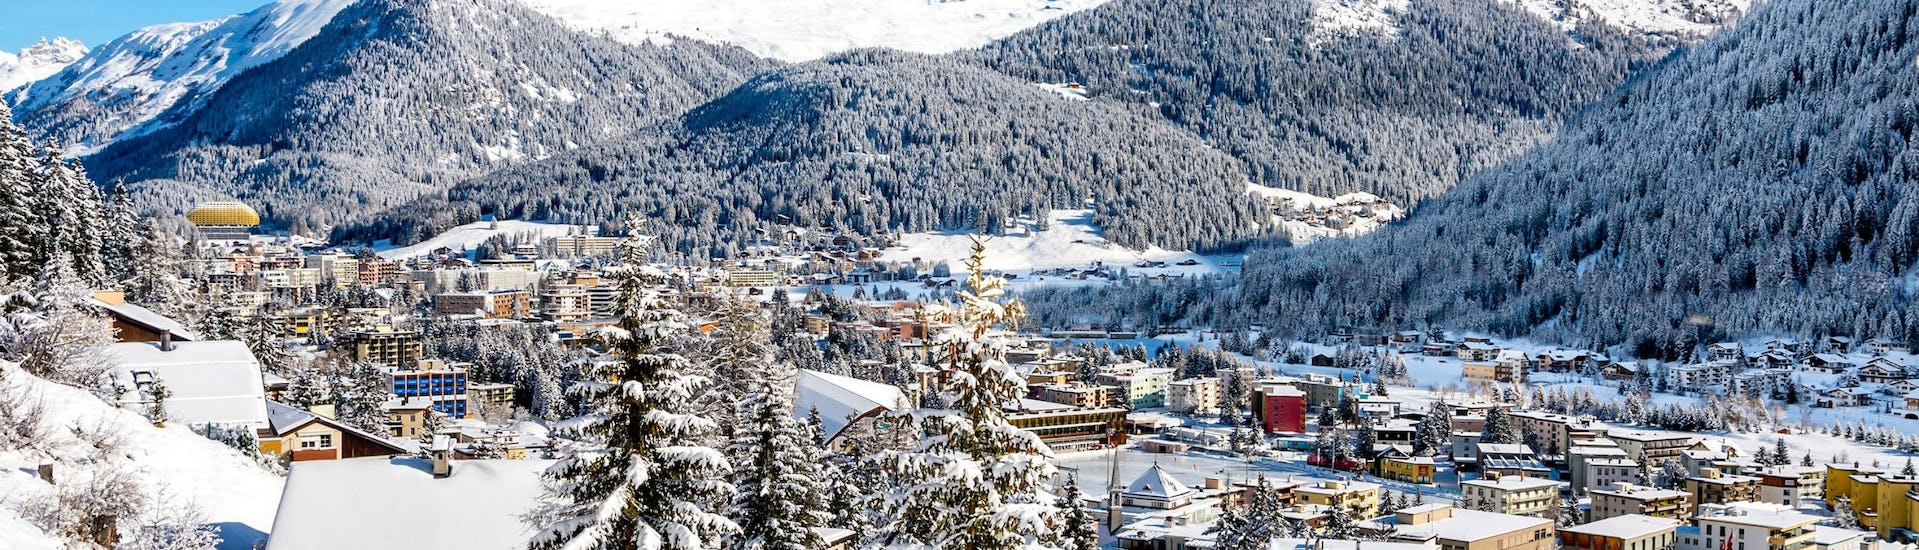 A view of the Swiss town of Davos, known not only for the World Economic Forum, but also for its ski schools that offer ski lessons to those who want to learn to ski.